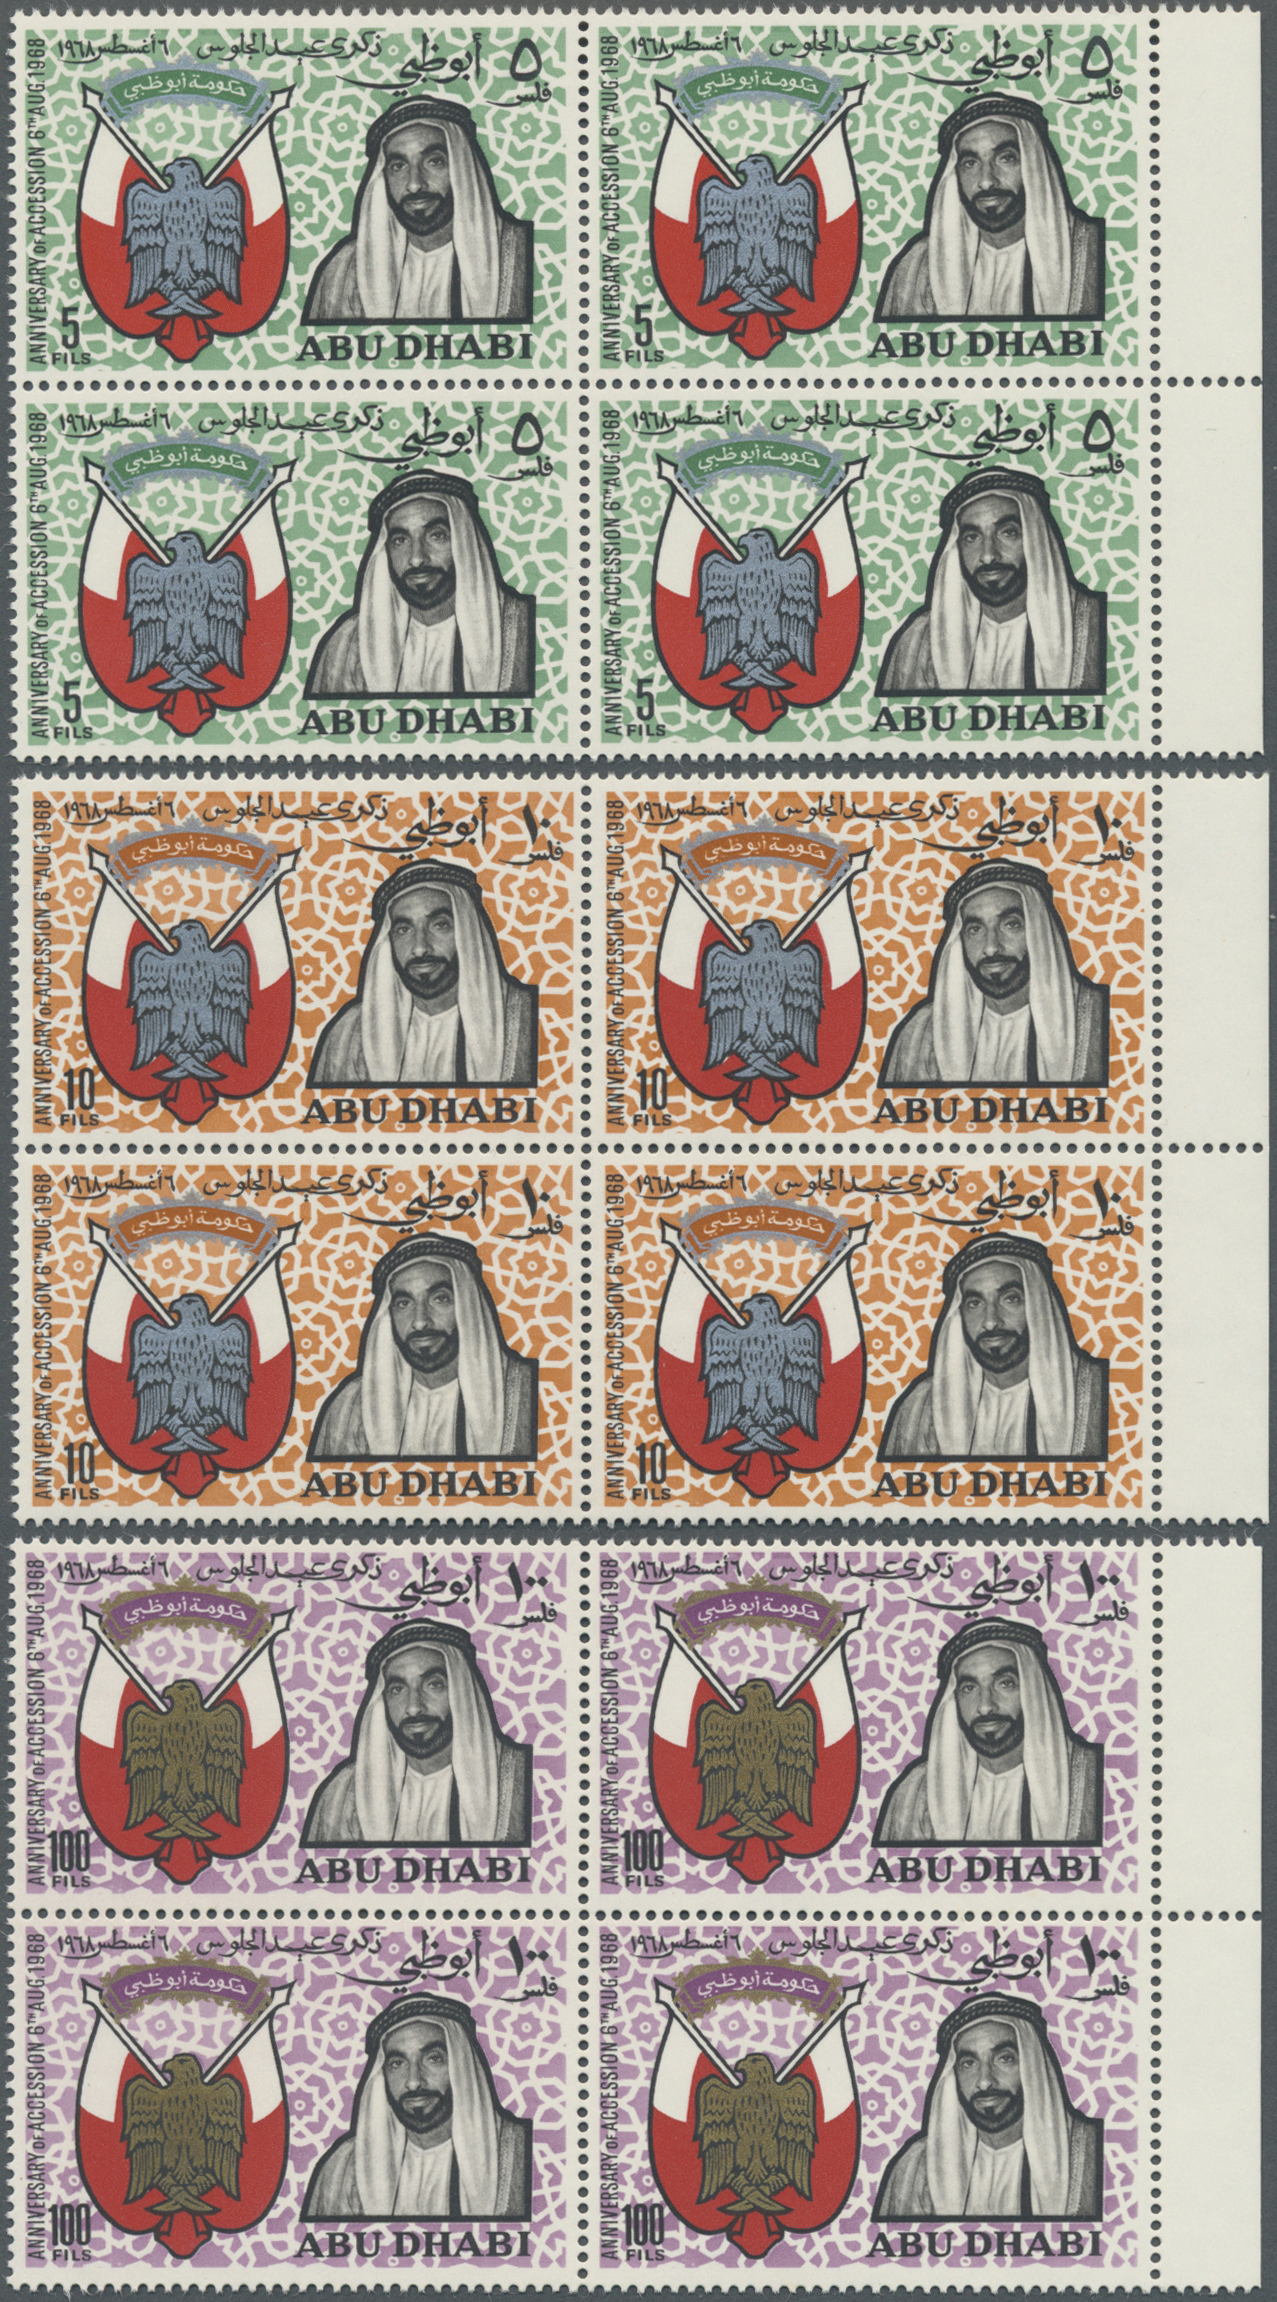 Lot 5002 - Abu Dhabi  -  Auktionshaus Christoph Gärtner GmbH & Co. KG Philately: ASIA single lots including Special Catalog Malaya Auction #39 Day 3